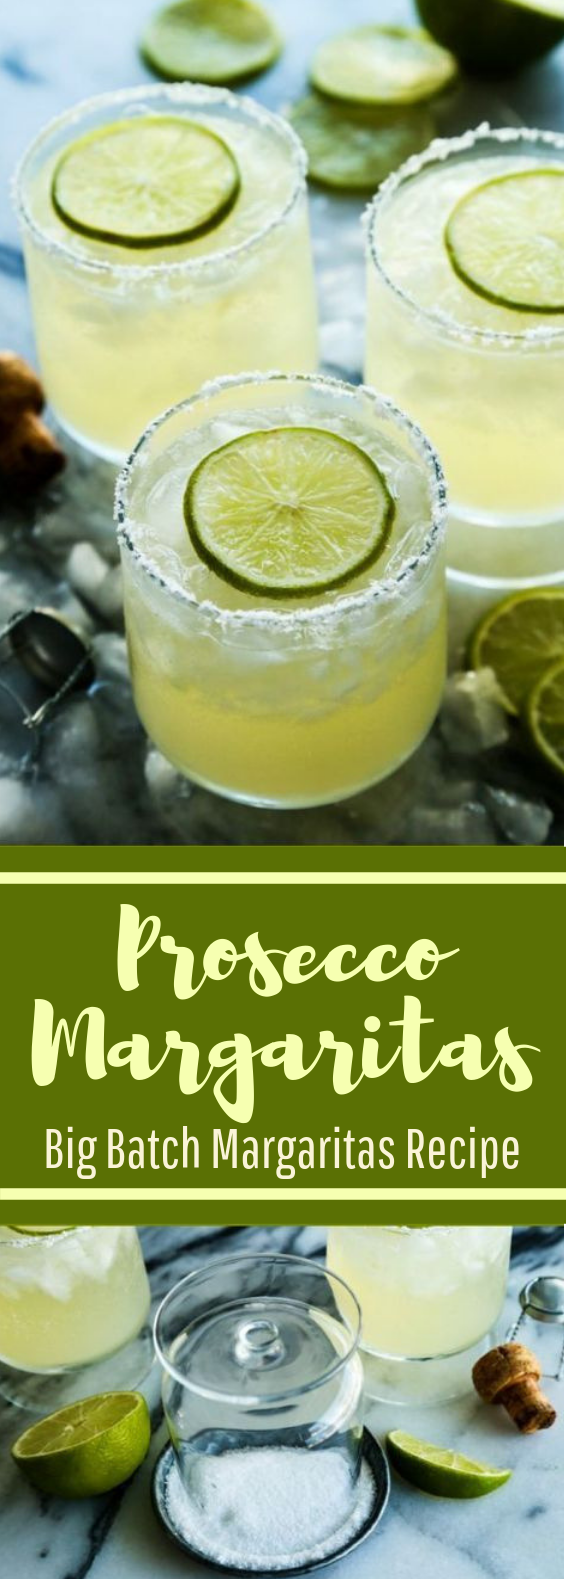 Prosecco Margaritas #drinks #cocktail